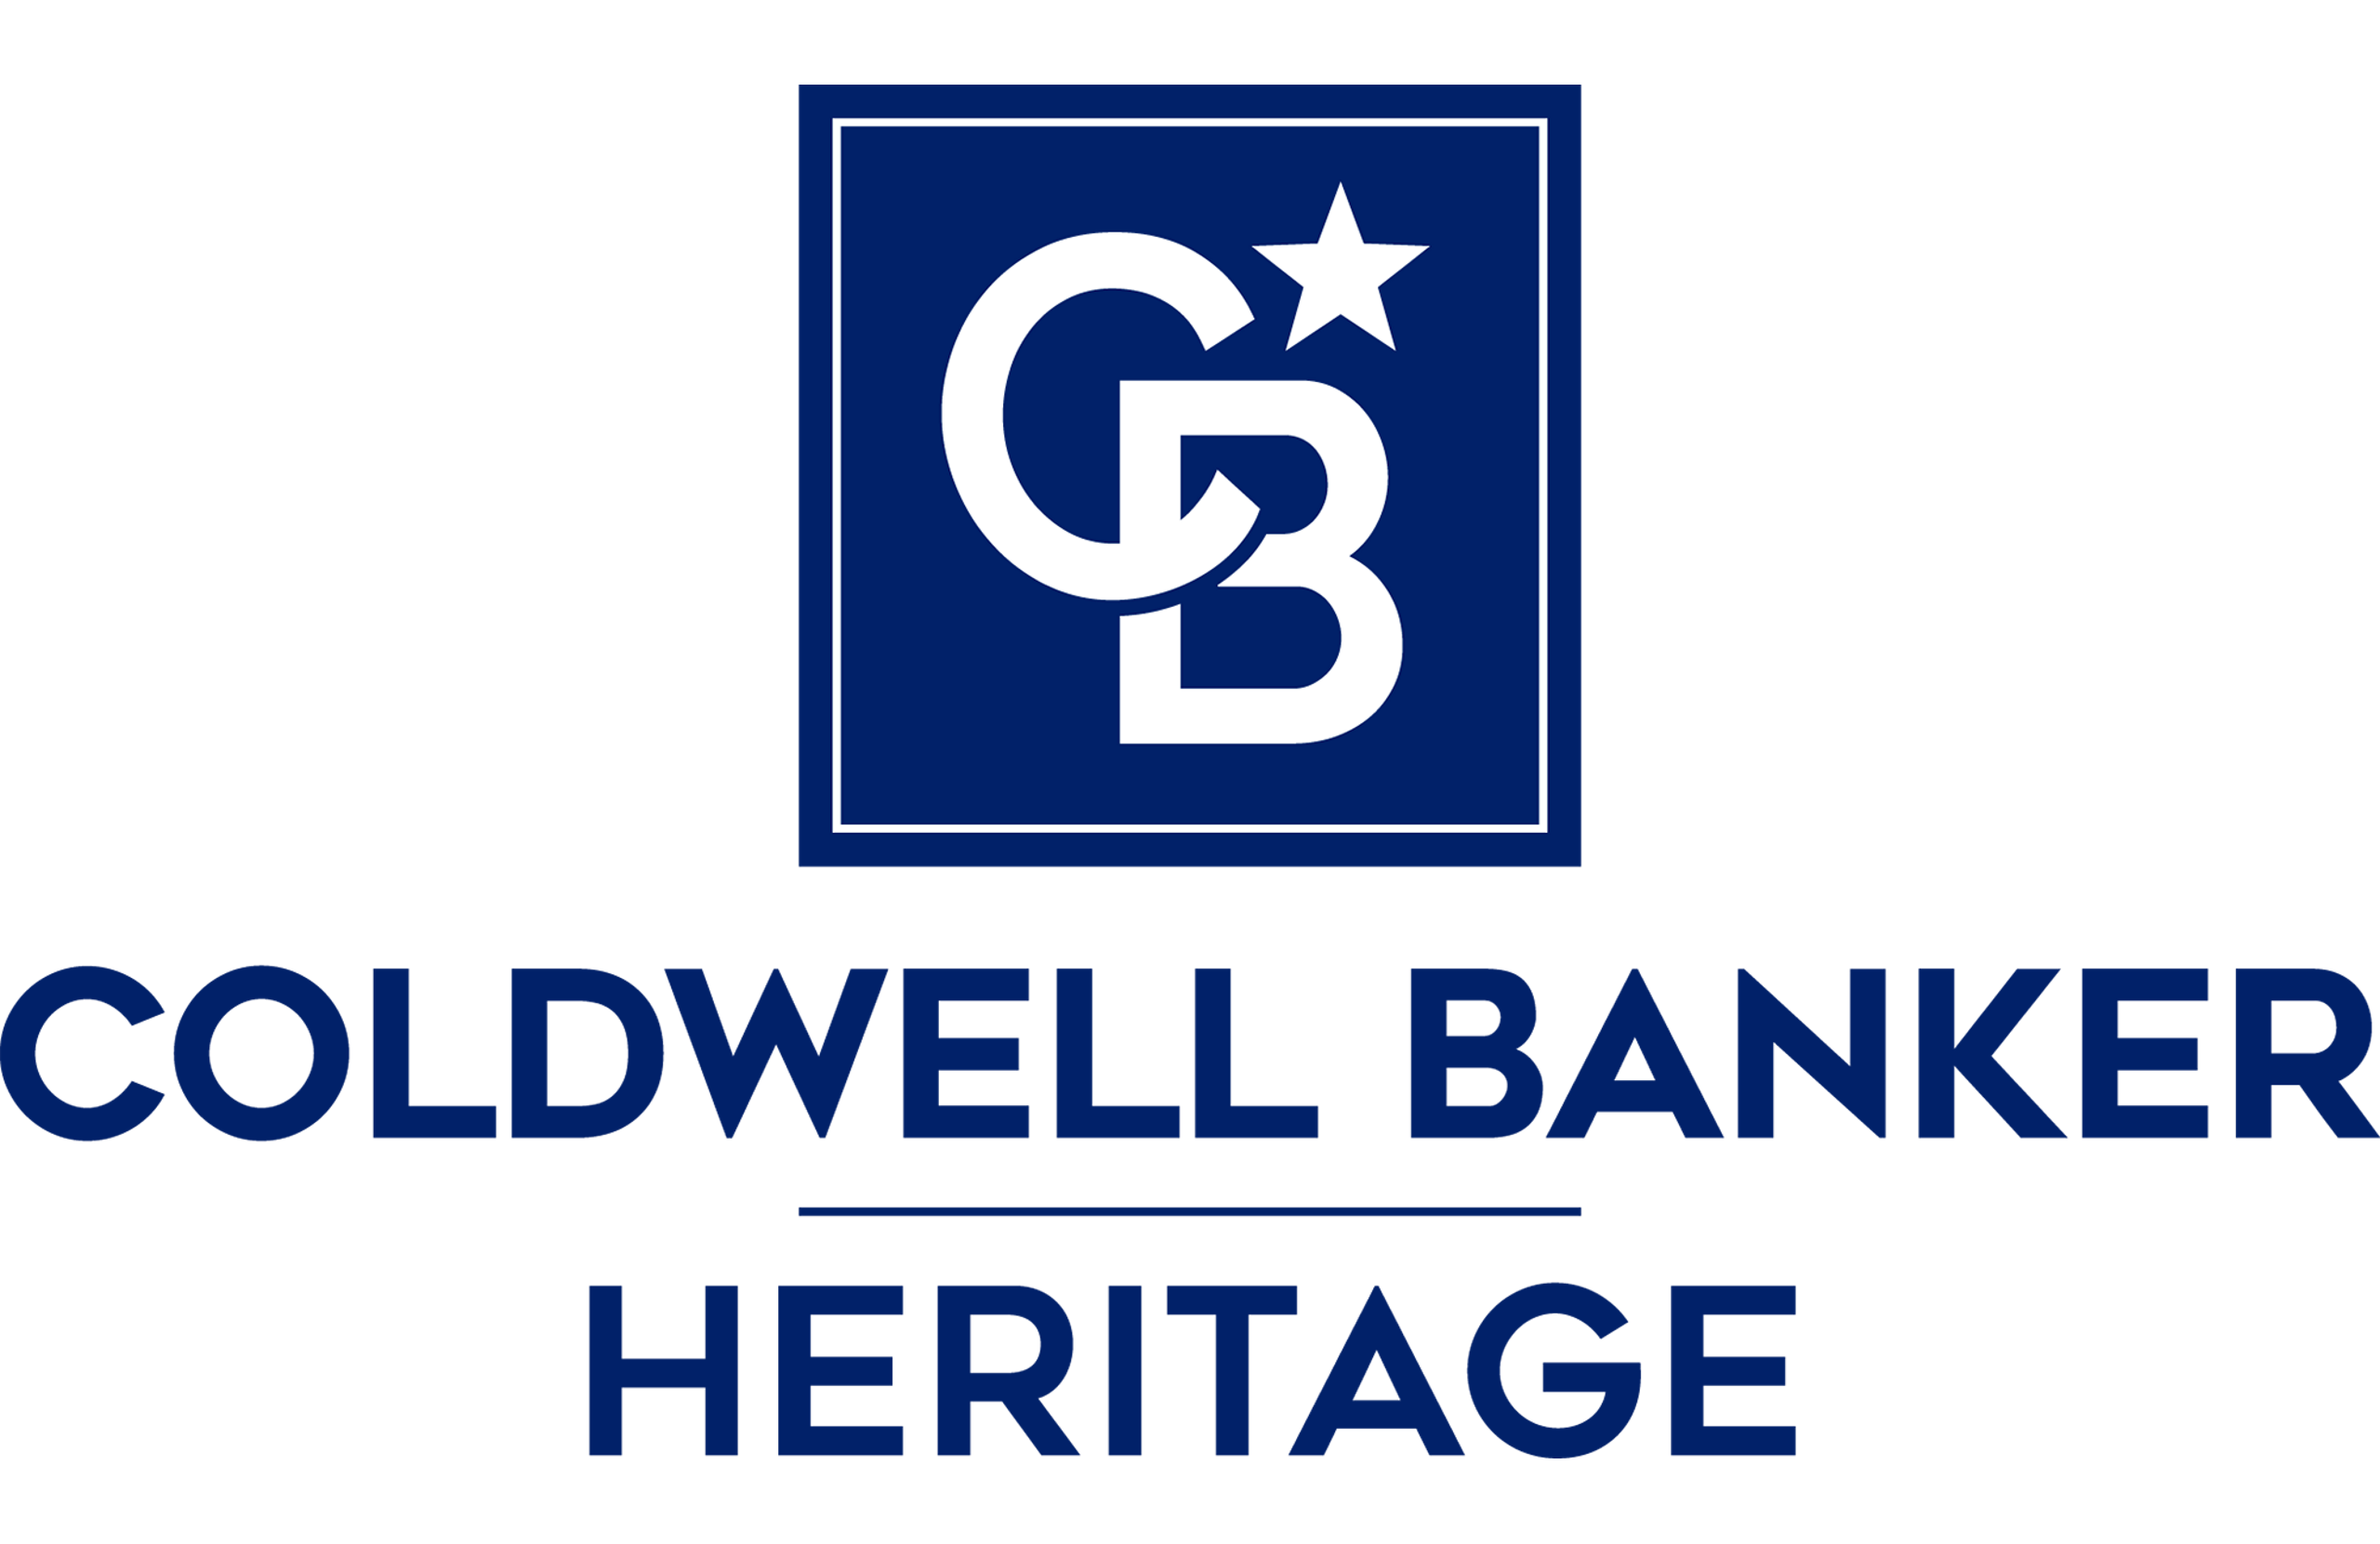 Chris Greenamyer - Coldwell Banker Heritage